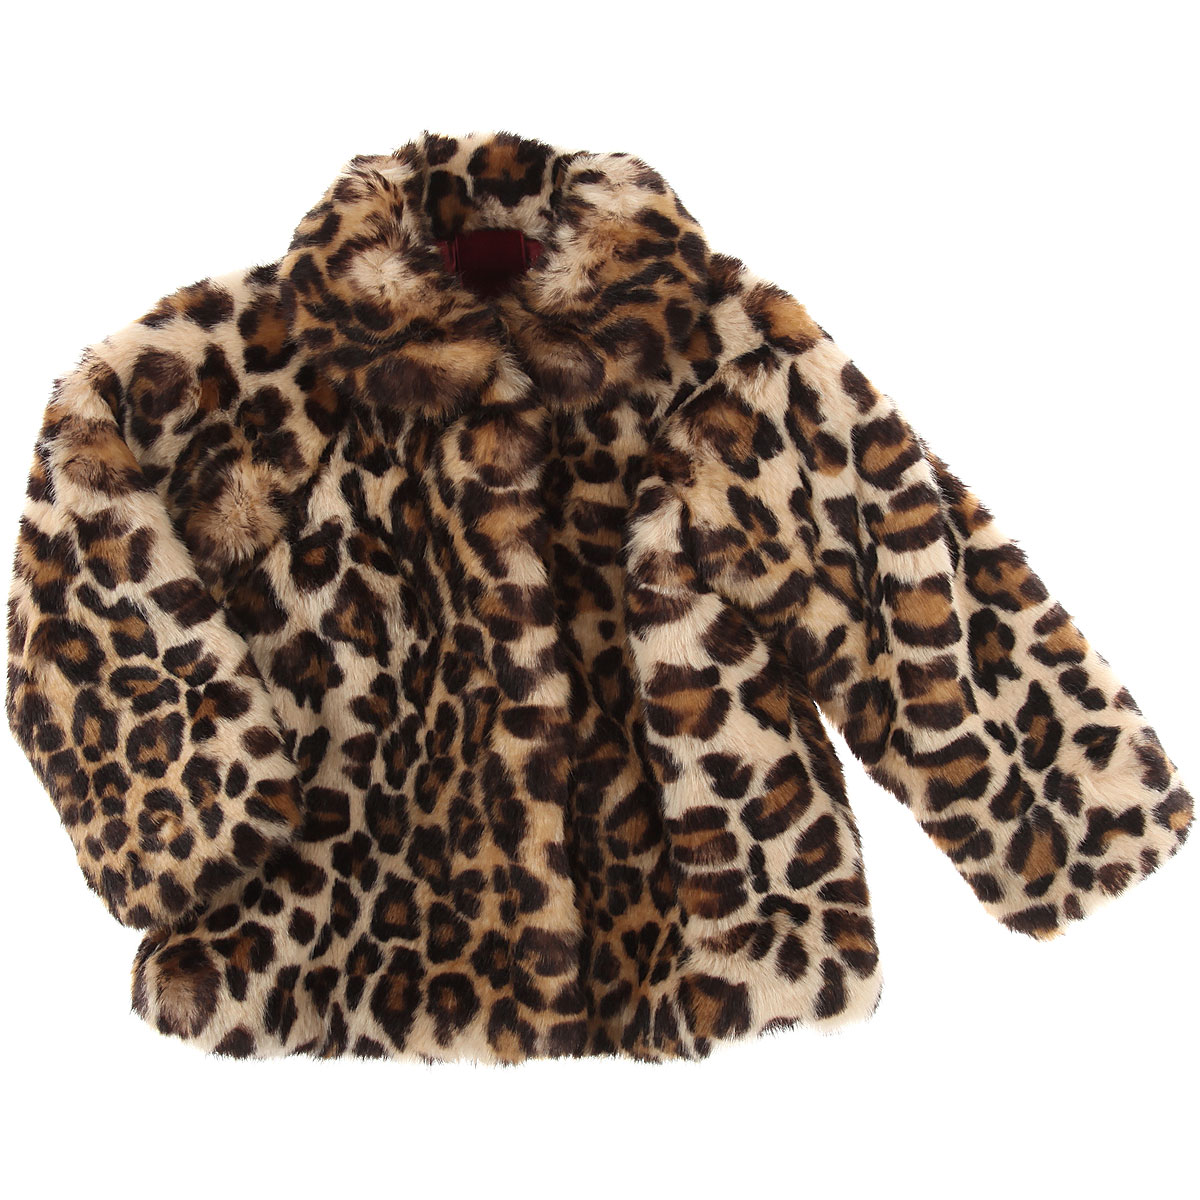 Image of Monnalisa Baby Coats for Girls, Leopard, modacryl, 2017, 12M 18M 2Y